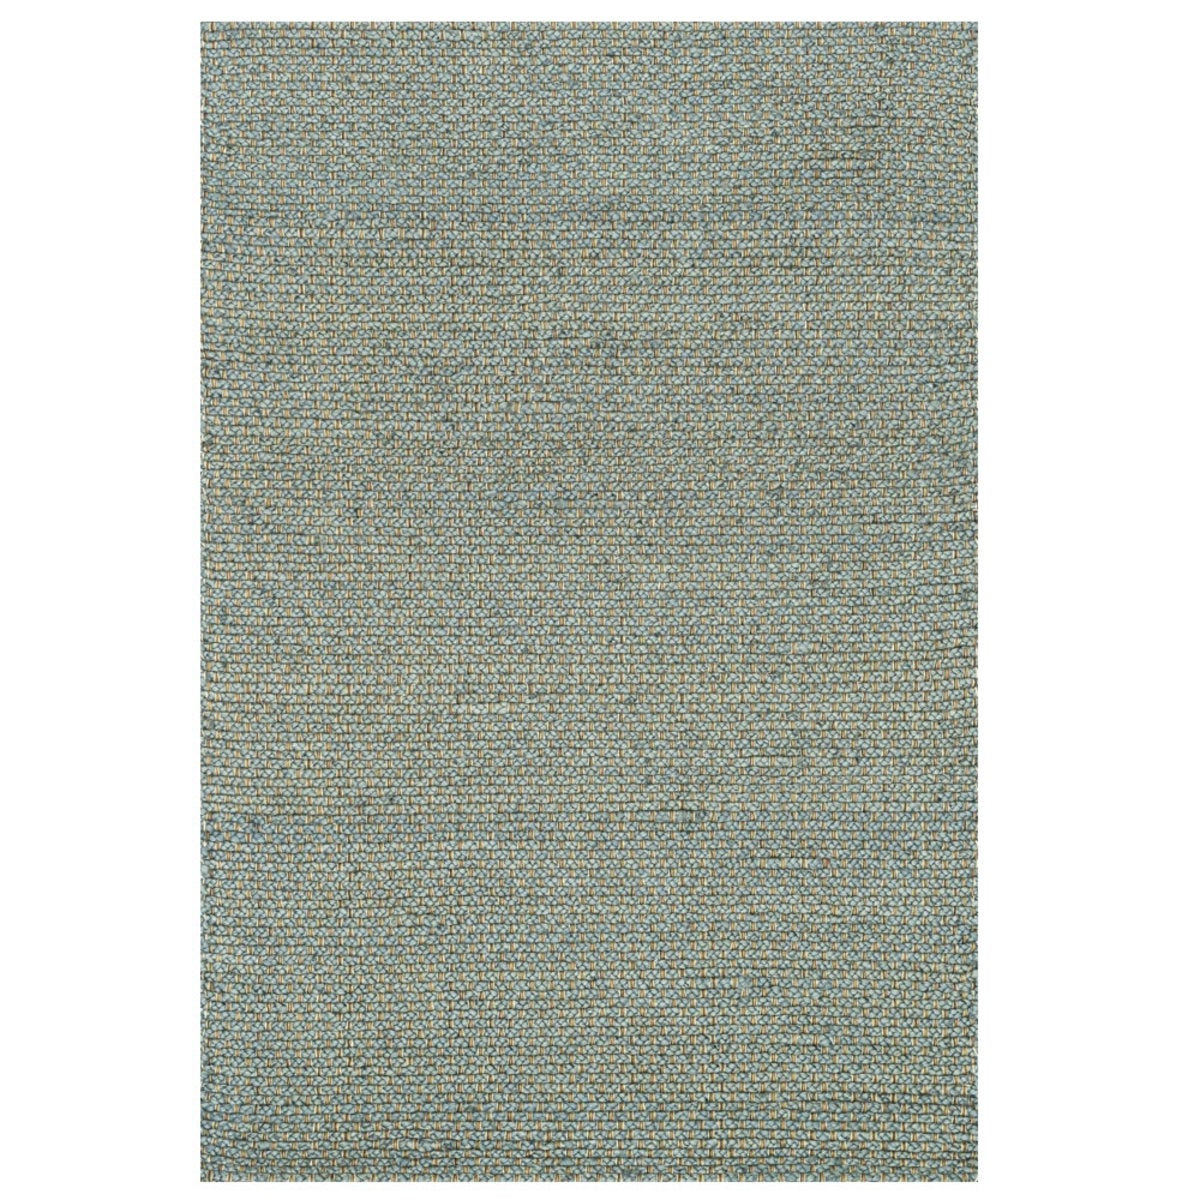 "Loloi Eco Checked Jute Rug in Black - 3'6"" x 5'6"" - Blue"